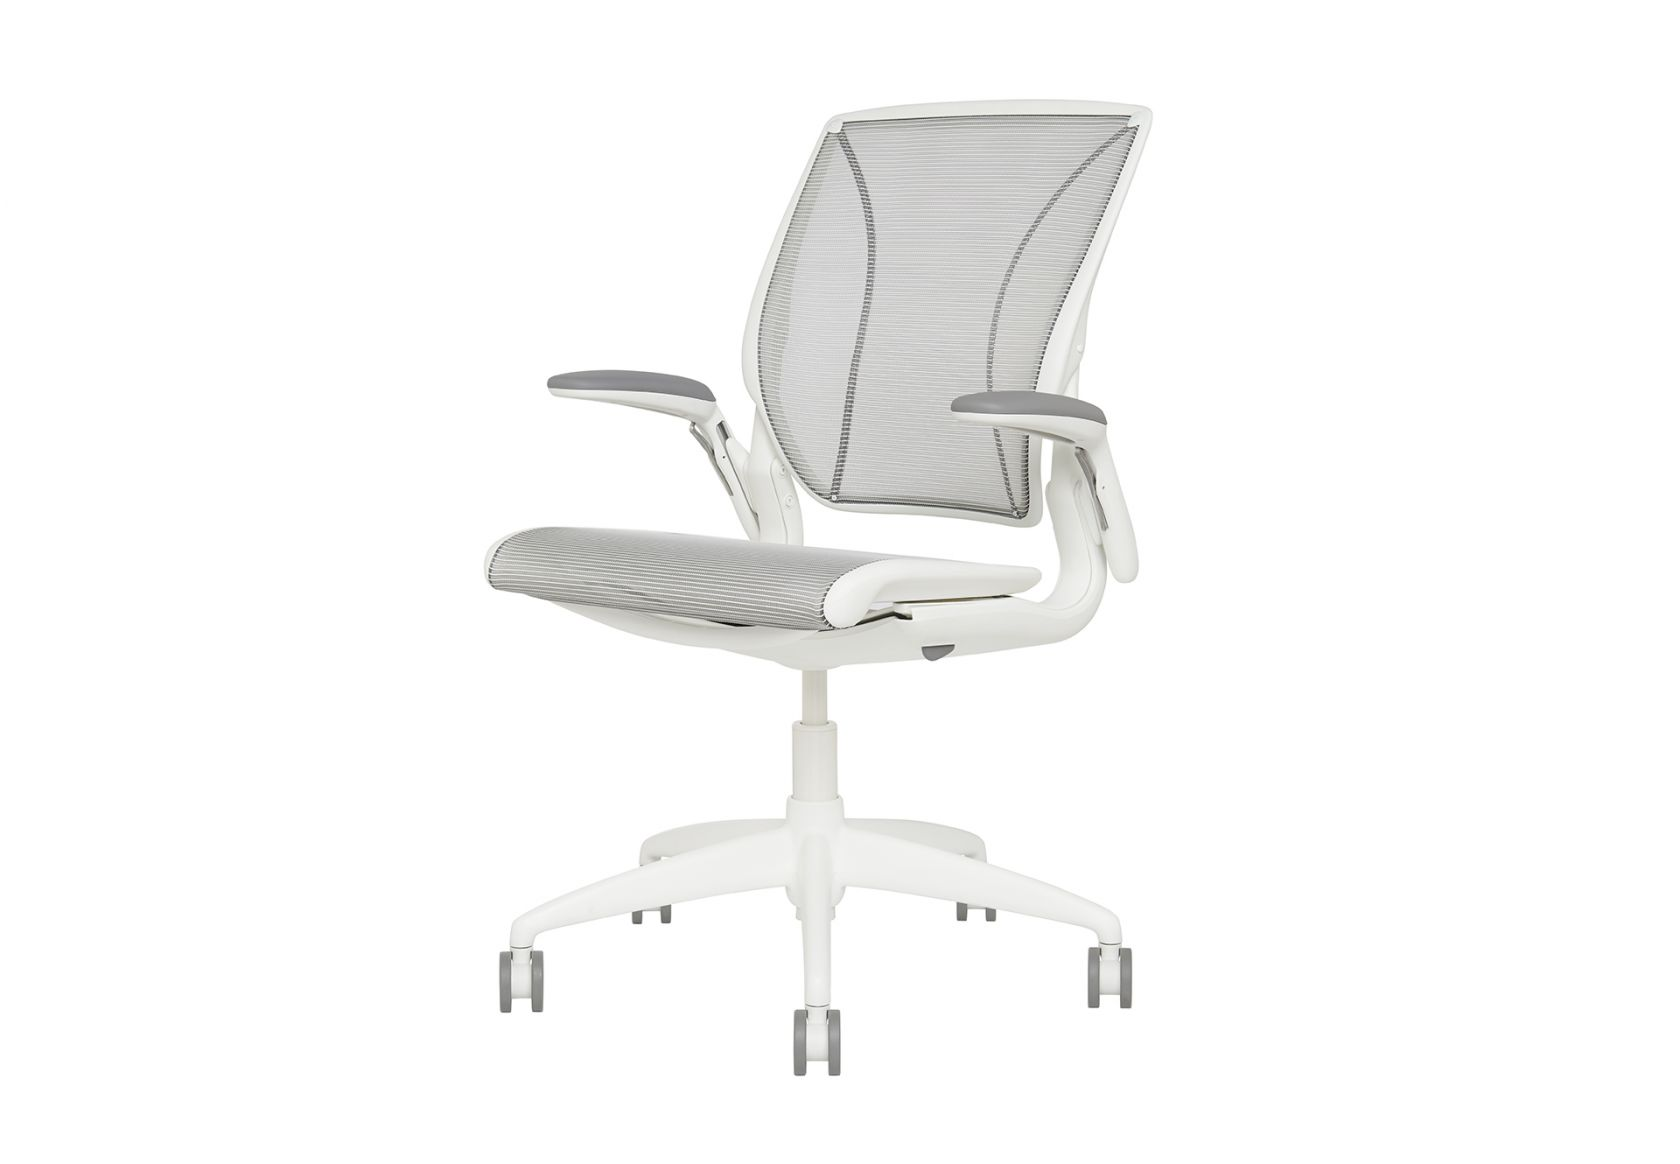 world-chair-01.jpg